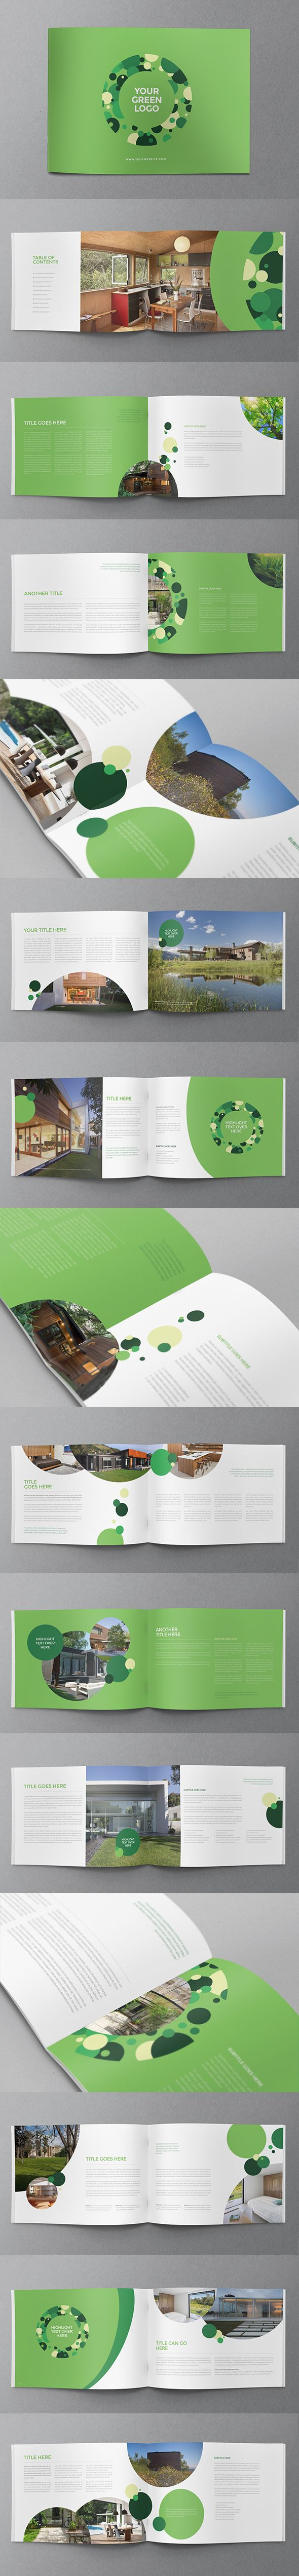 Green Modern Ecologic brochure design